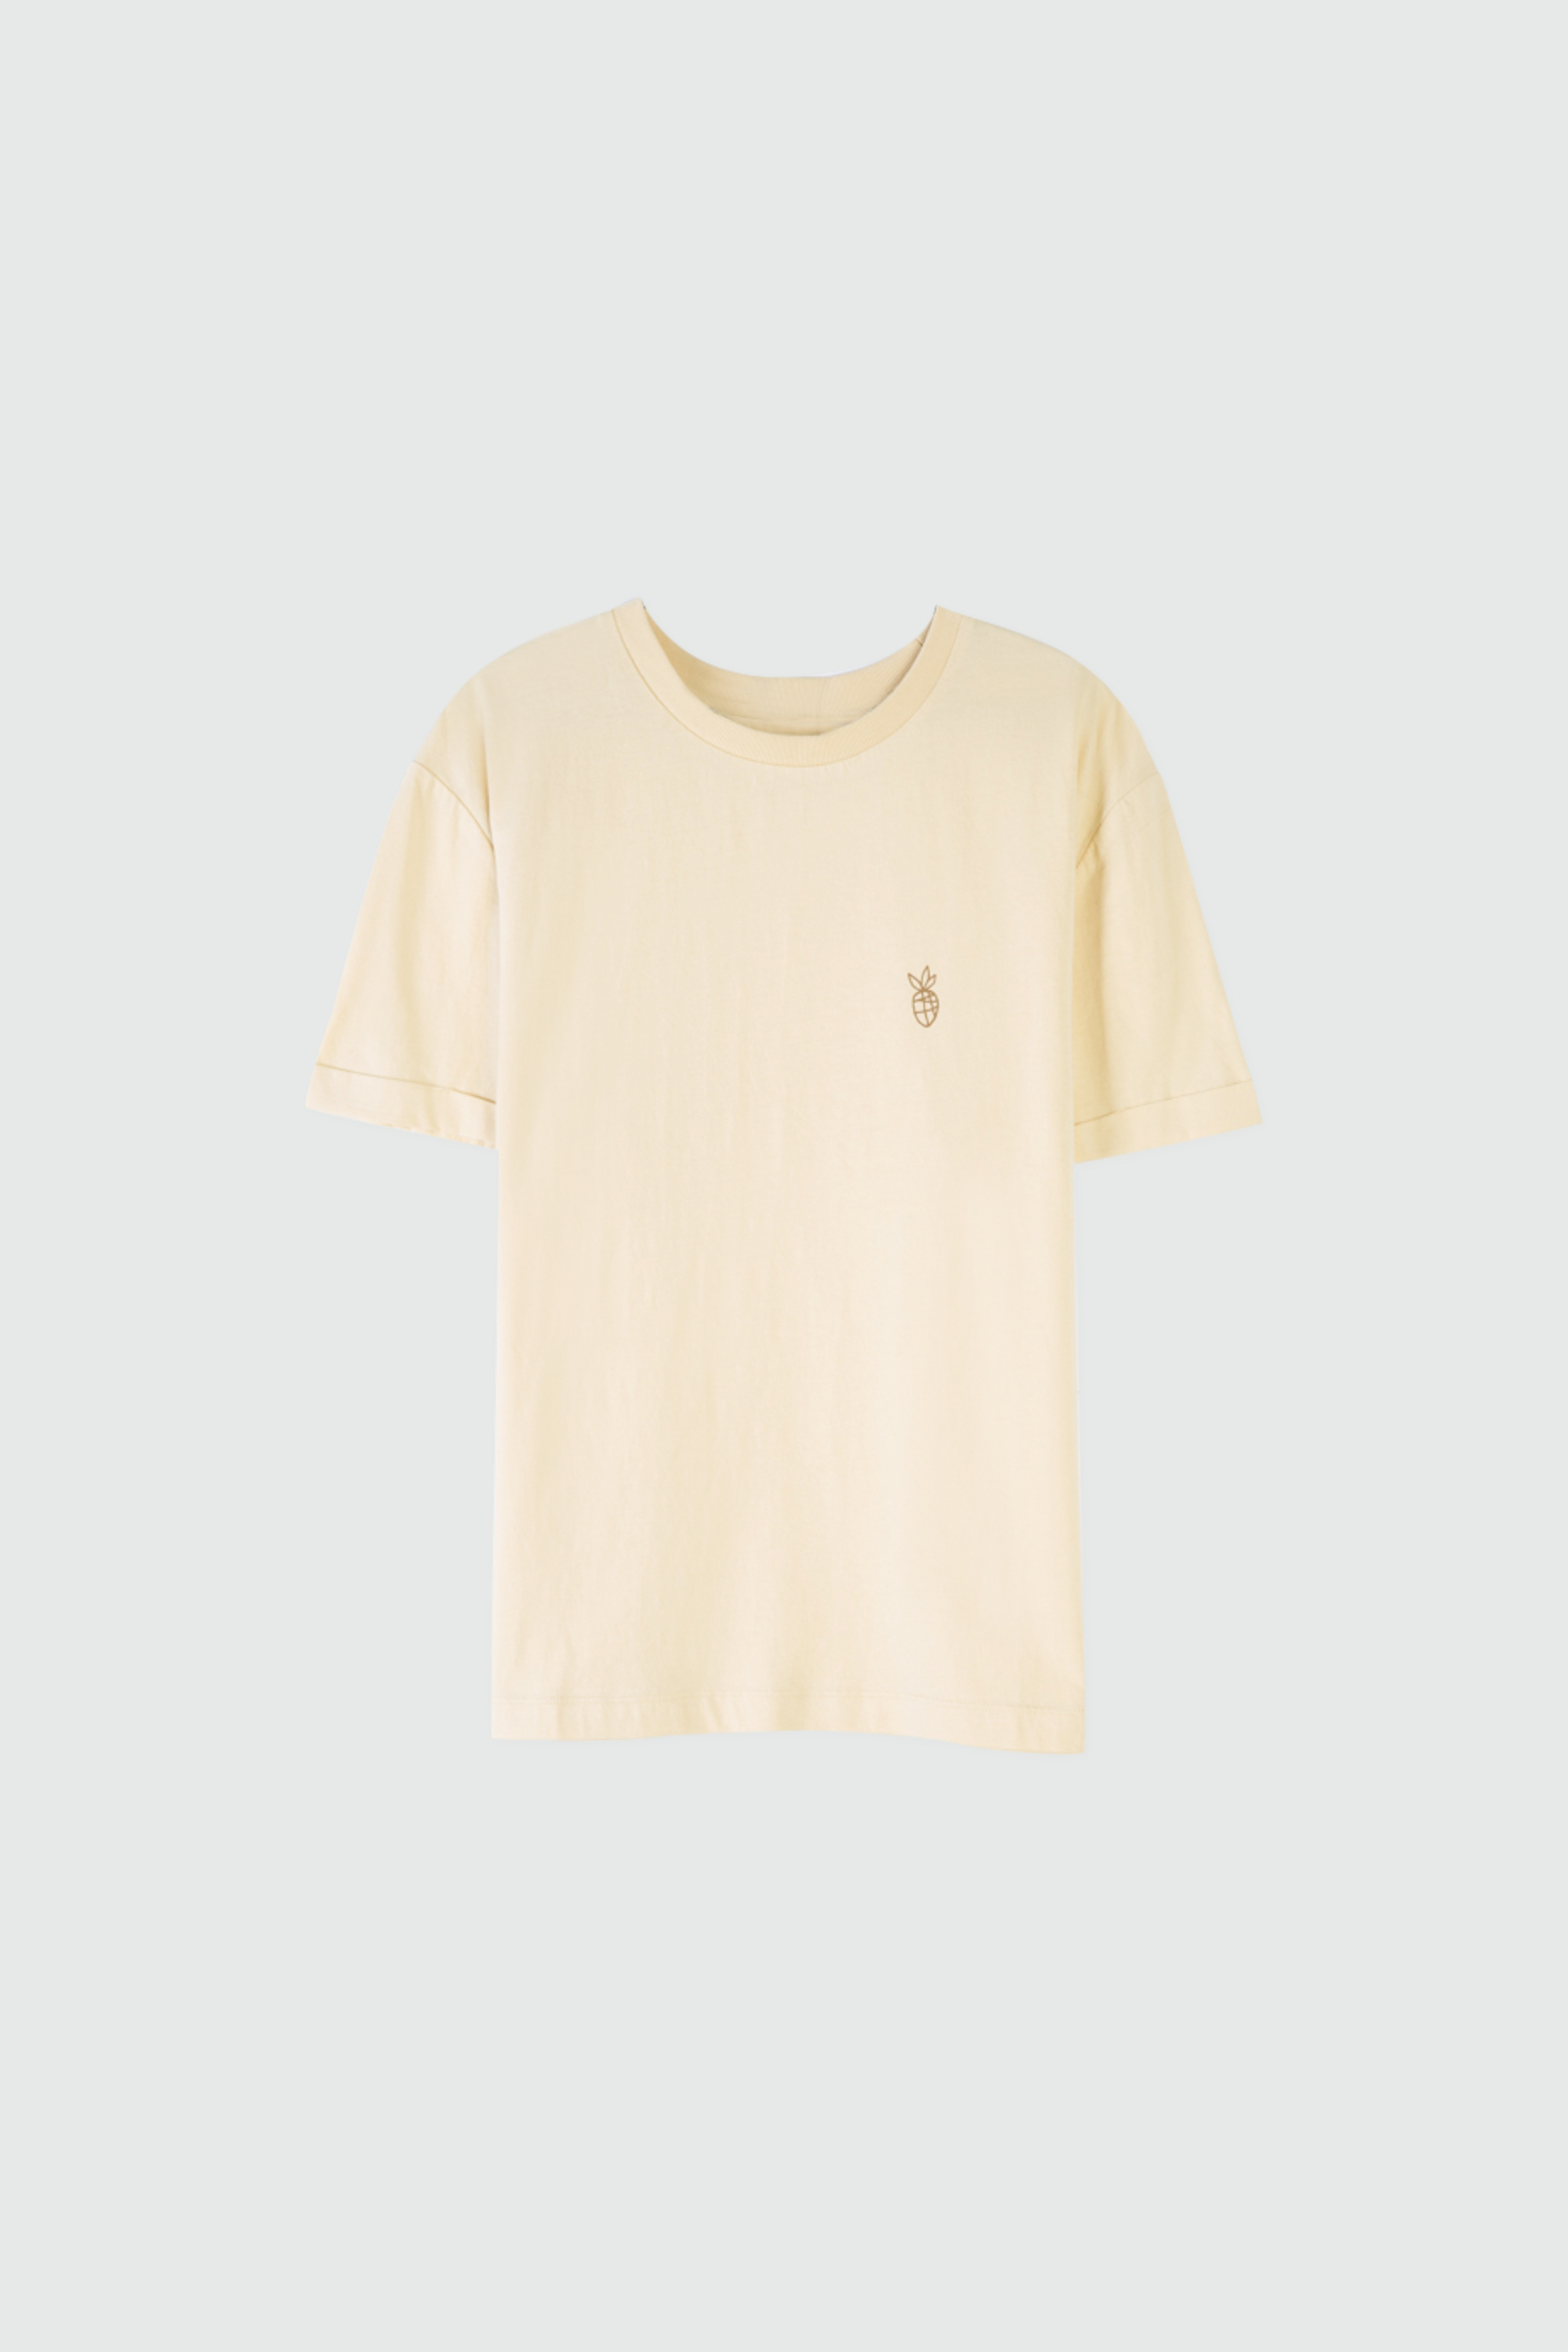 TShirt 10642019 Yellow 17